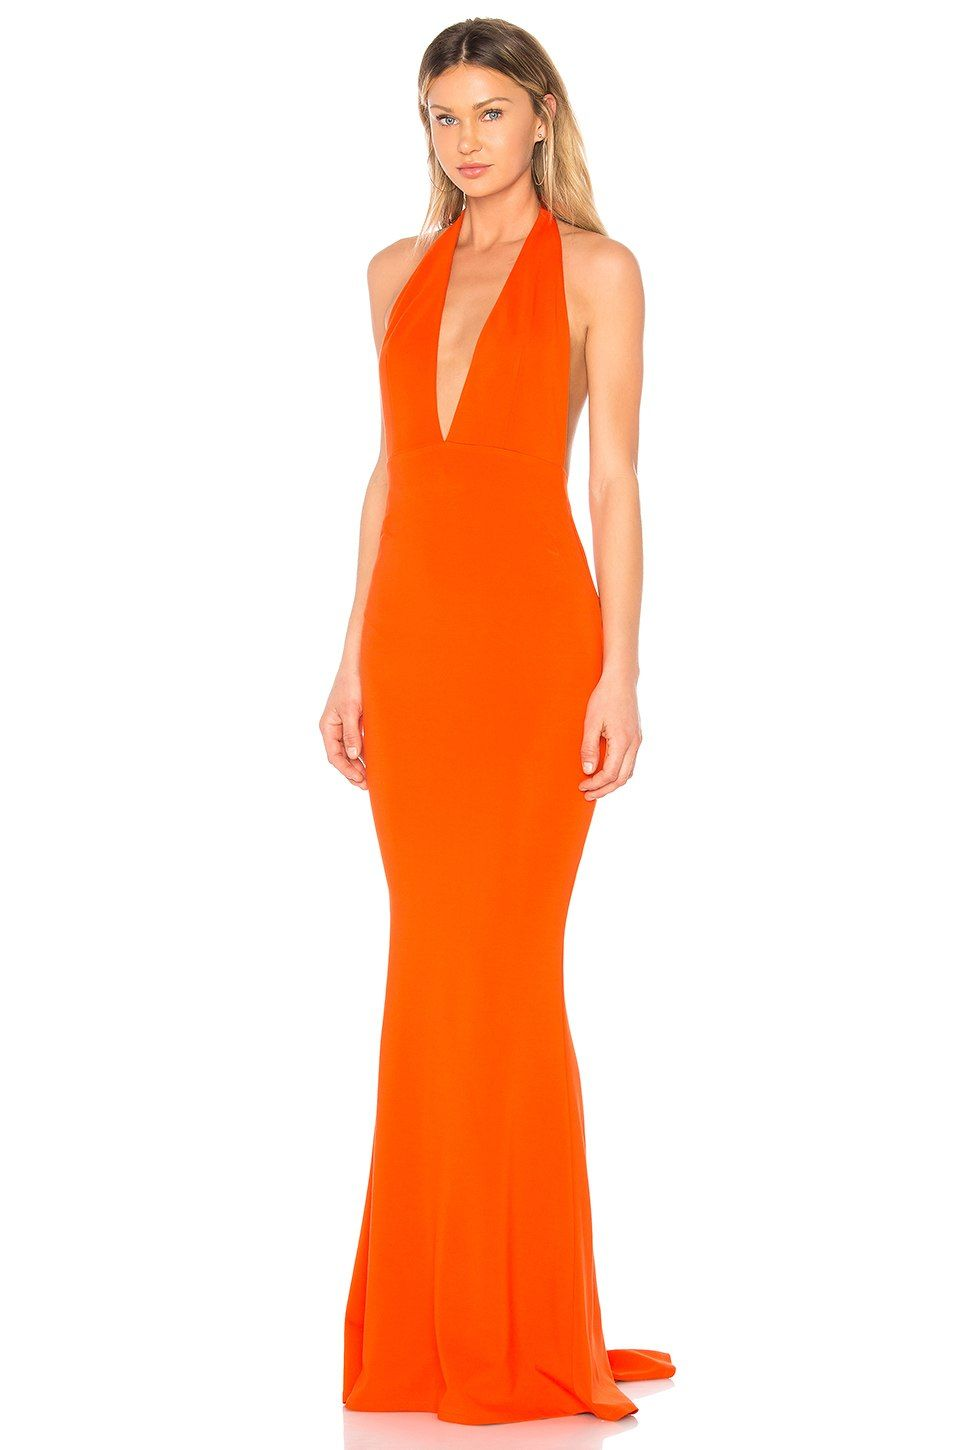 fc17bed070 NBD Jenny From The Block Gown in Persimmon